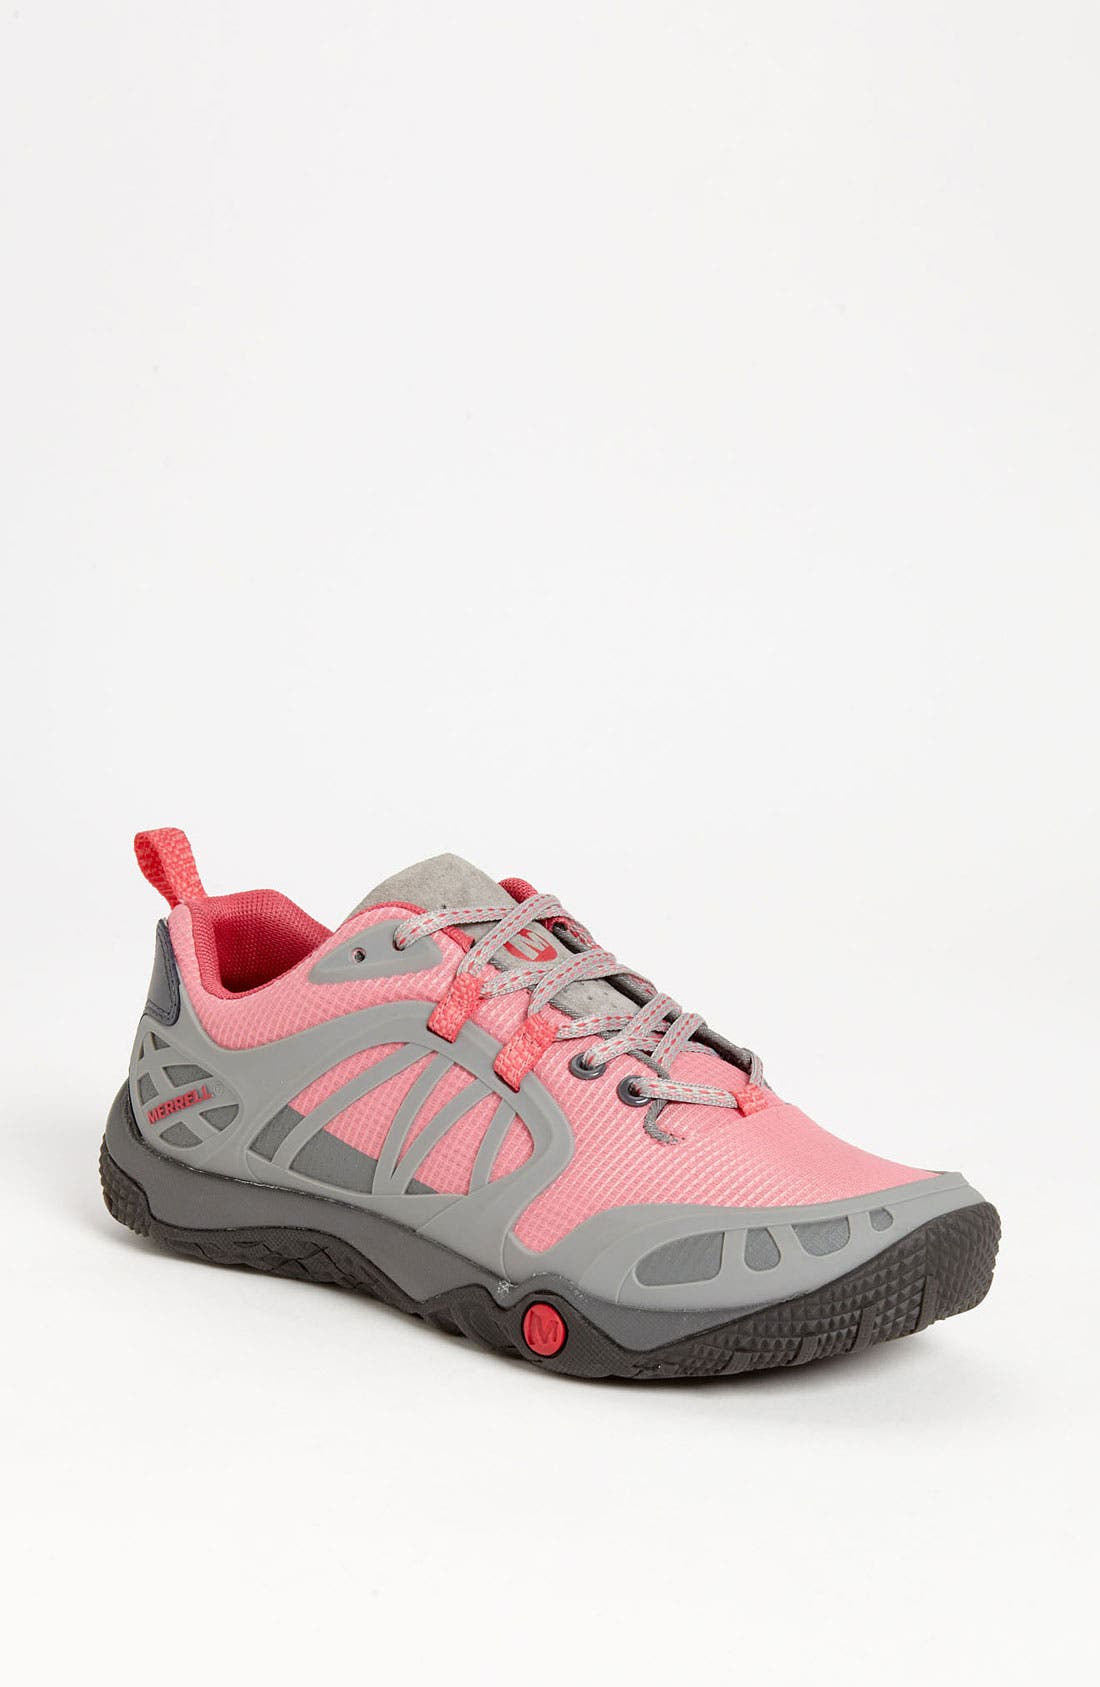 Alternate Image 1 Selected - Merrell 'Proterra Vim' Hiking Shoe (Women)